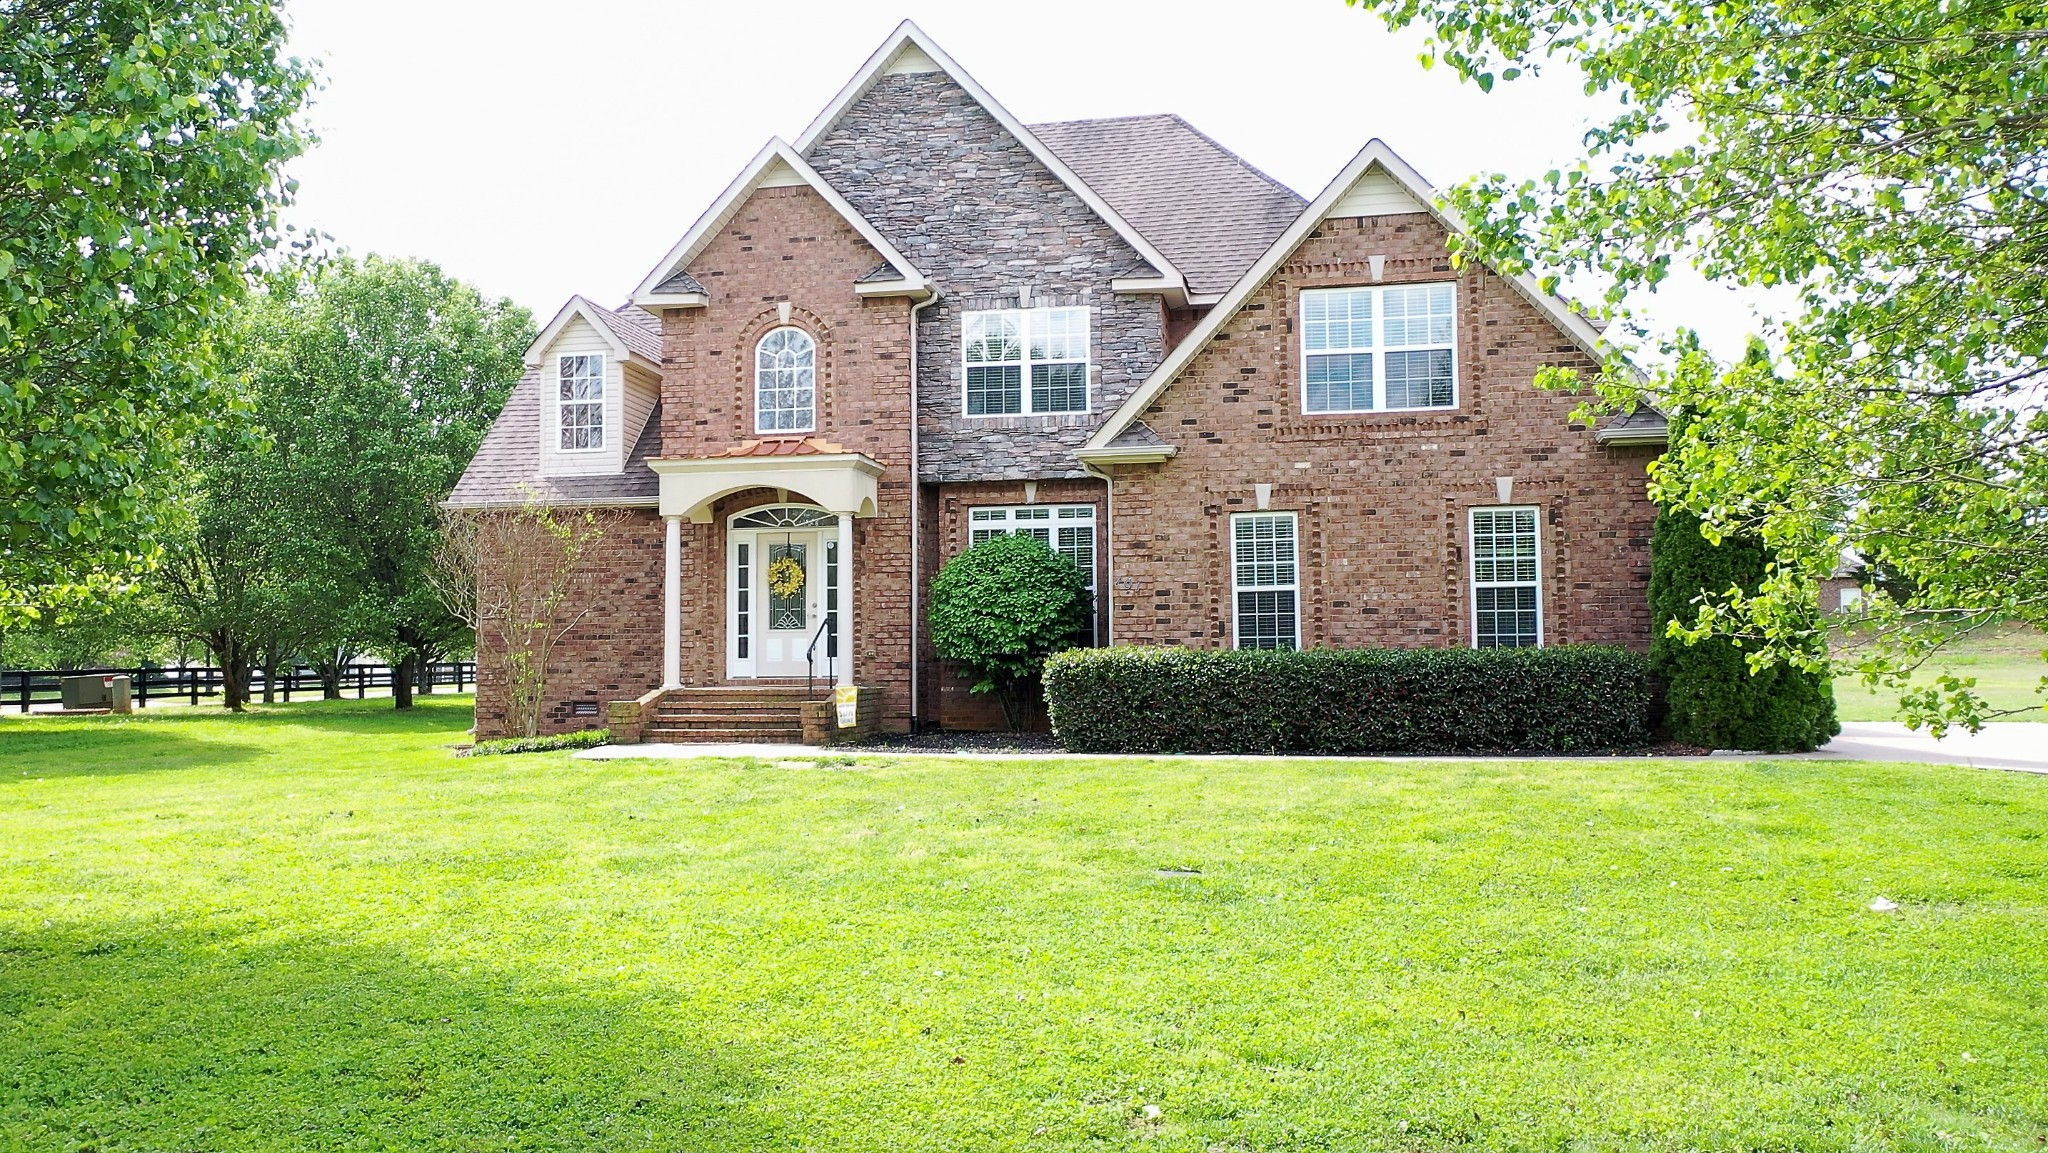 101 Pacific Ave Property Photo - Shelbyville, TN real estate listing